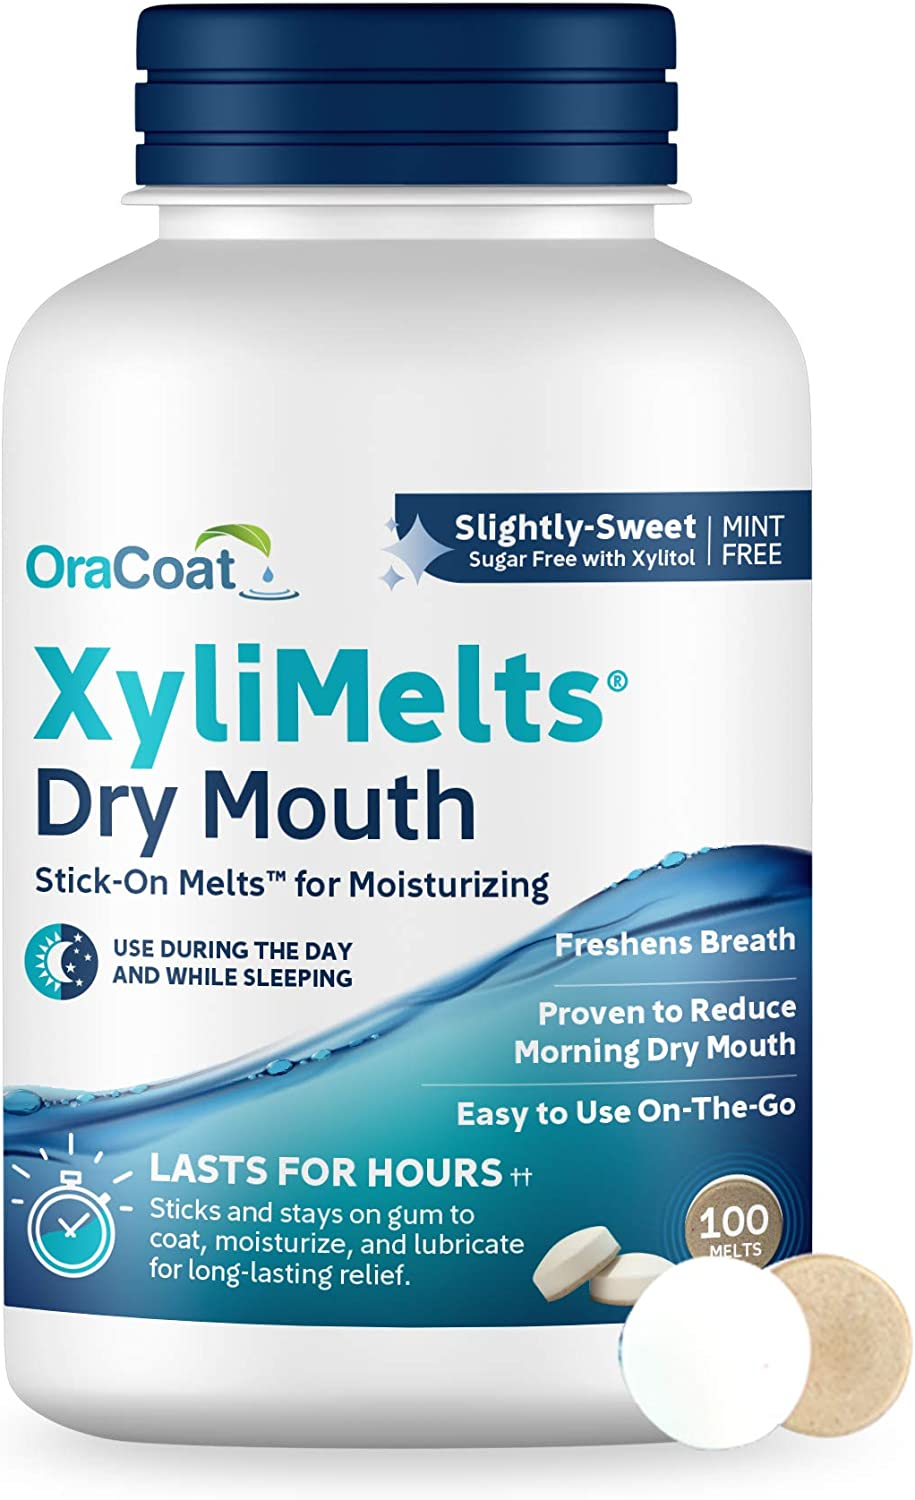 OraCoat XyliMelts Dry Mouth Relief Oral Adhering Discs Slightly Sweet with Xylitol, for Dry Mouth, Stimulates Saliva, Non-Acidic, Day and Night Use, Time Release for up to 8 Hours, 100 Count.